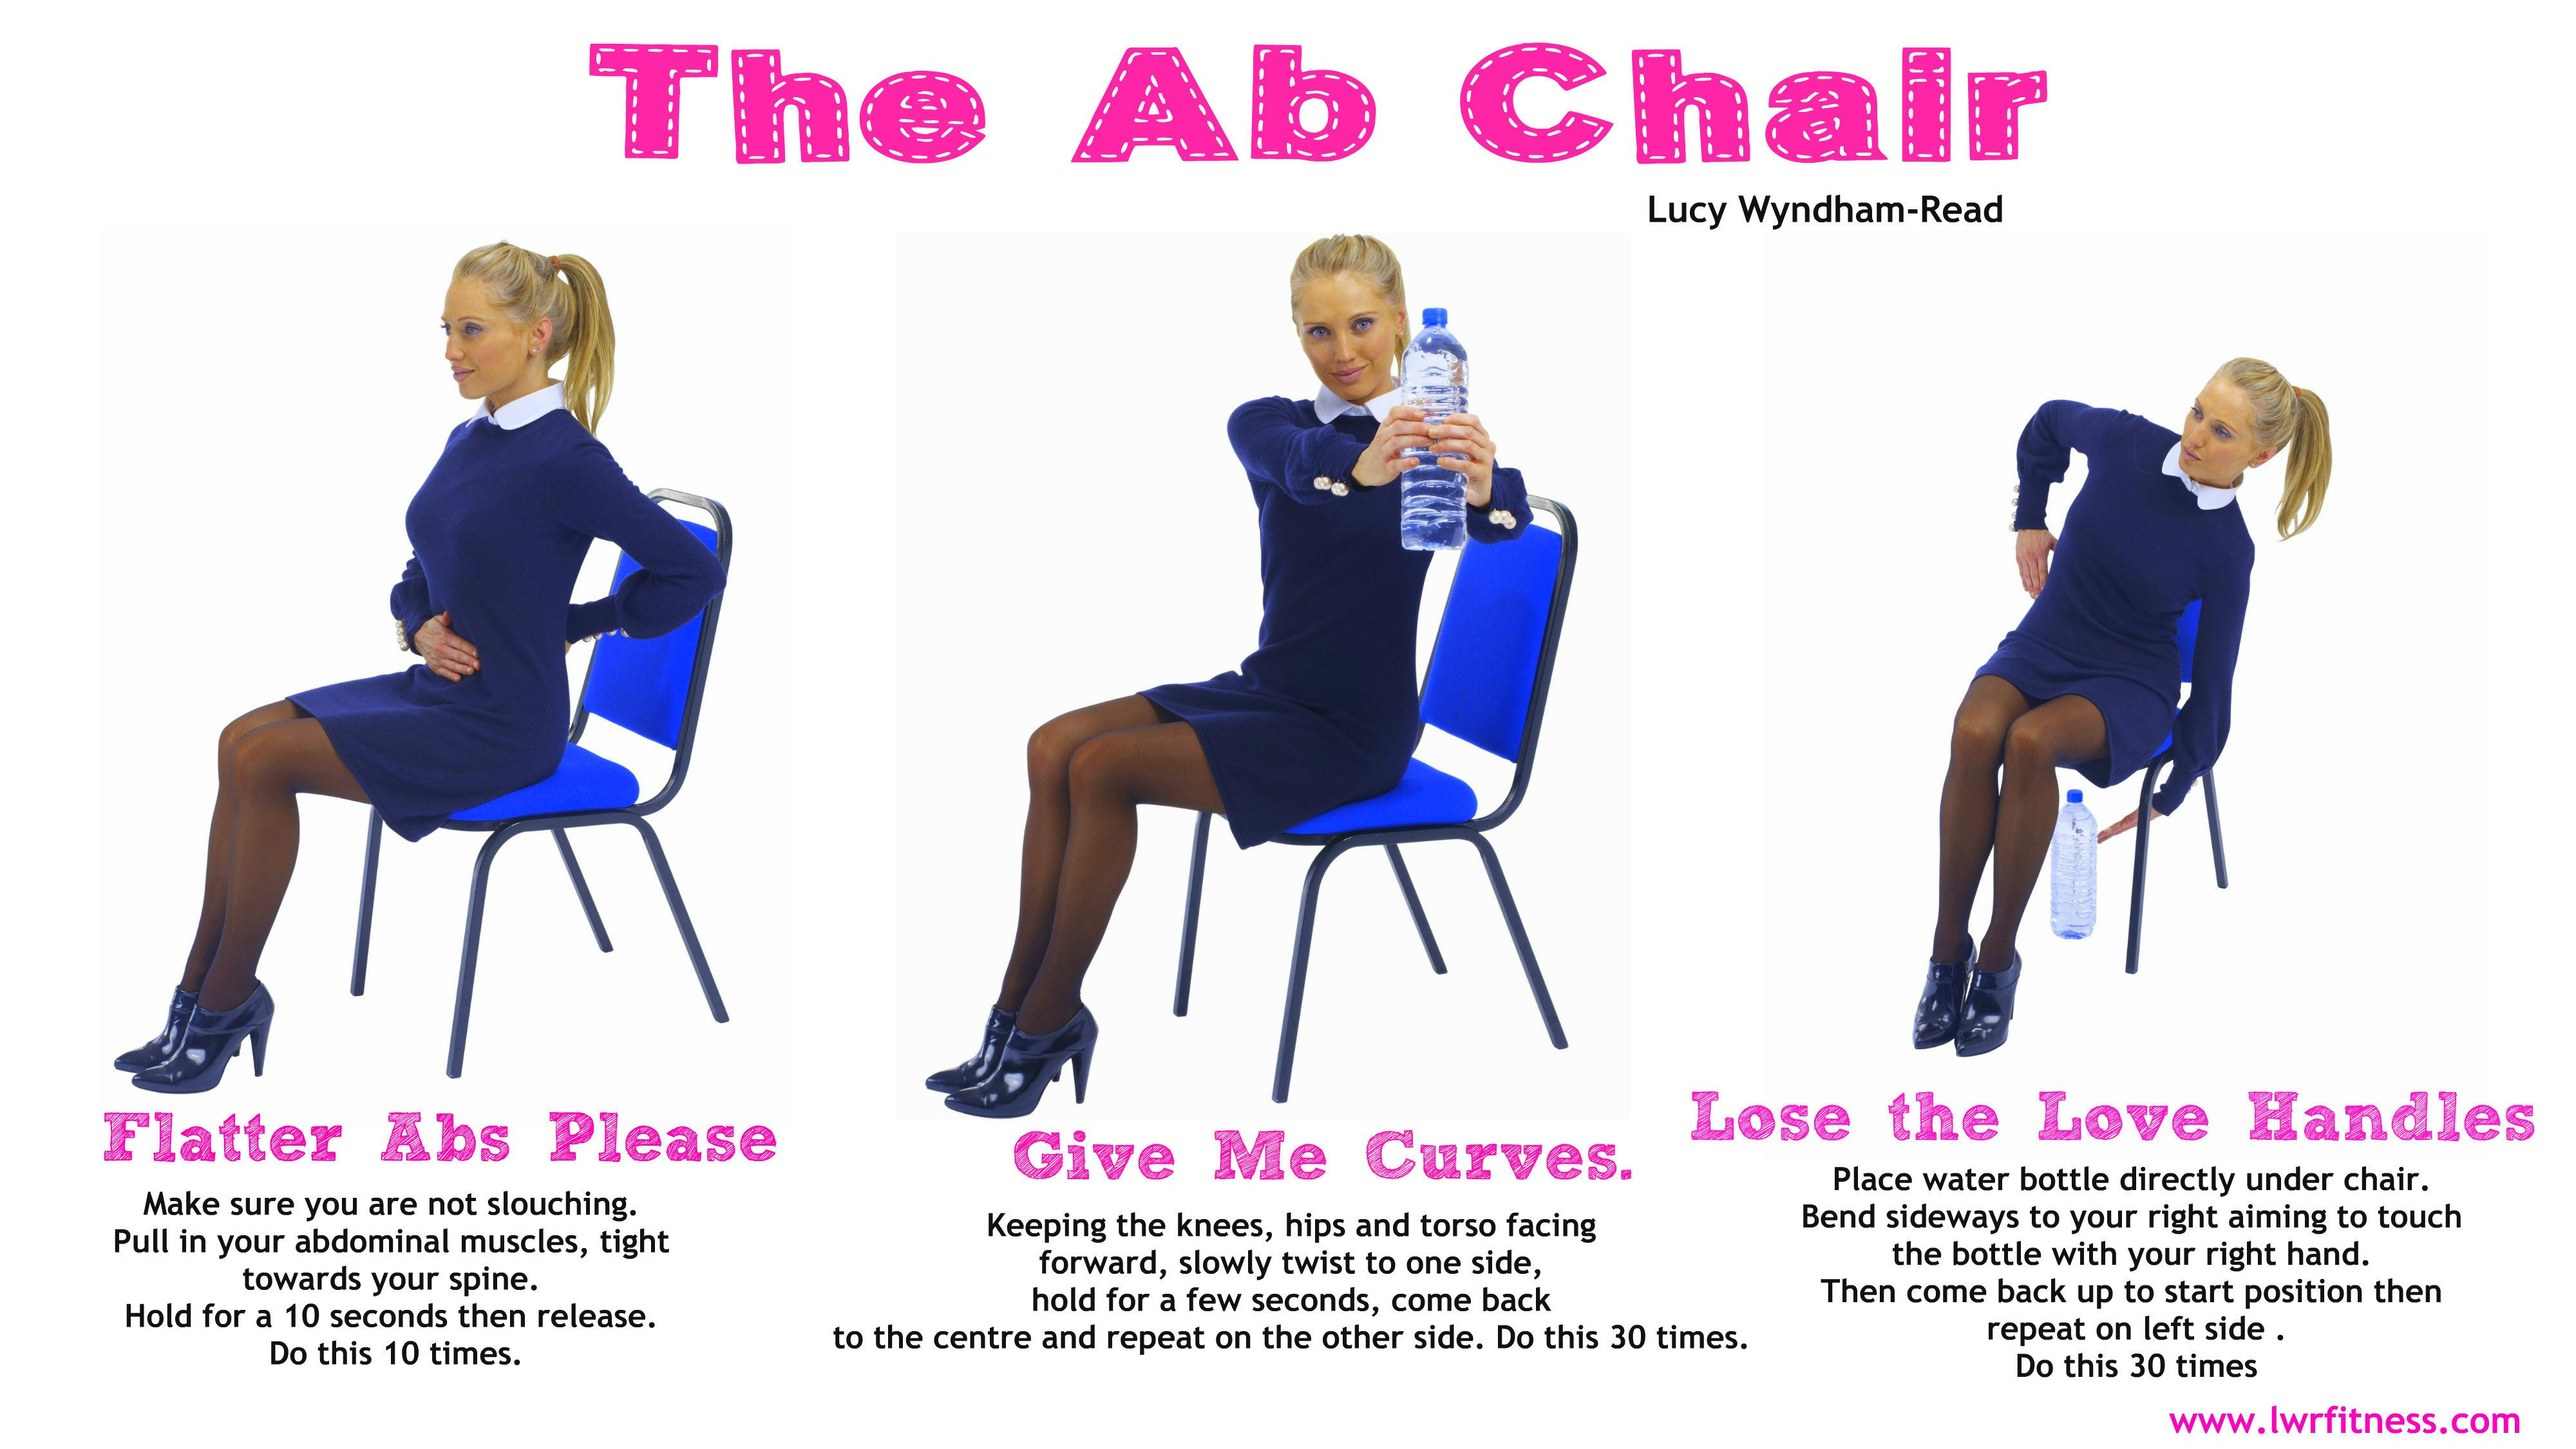 office chair exercises fishing chairs with rod holders turn your into an ab toning and do this